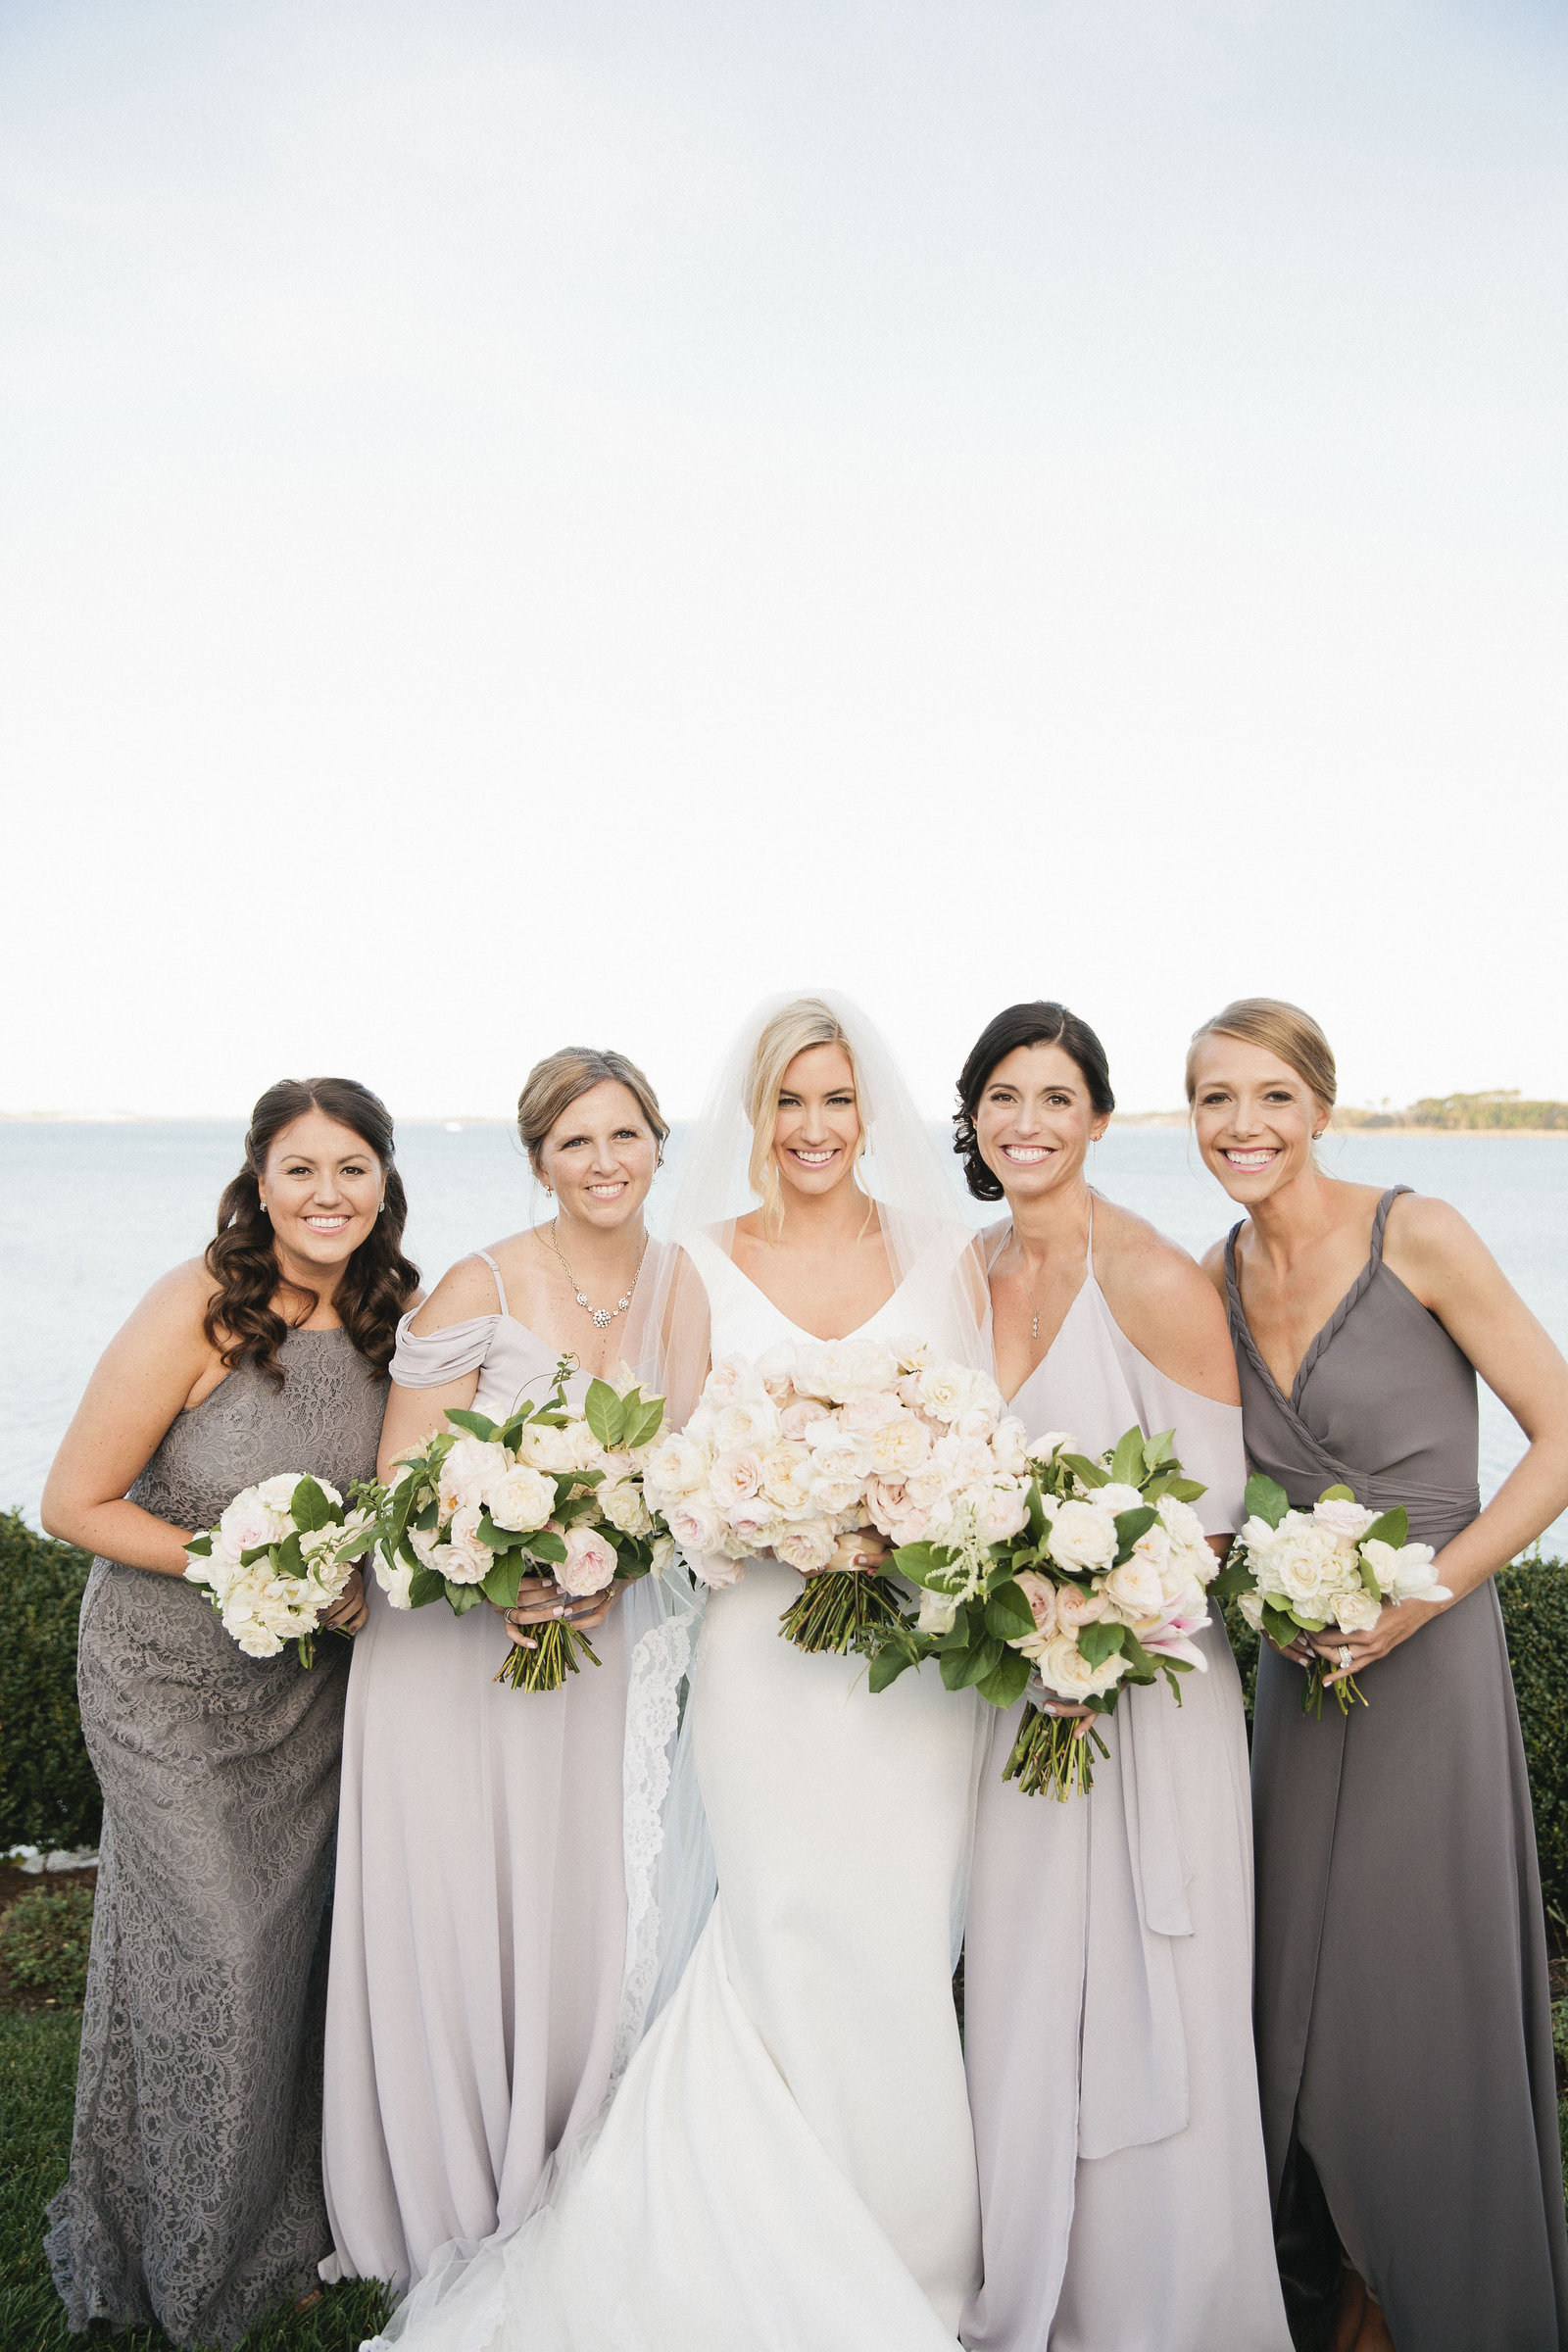 Whitney Bischoff and her bridesmaids in gray bridesmaids dresses